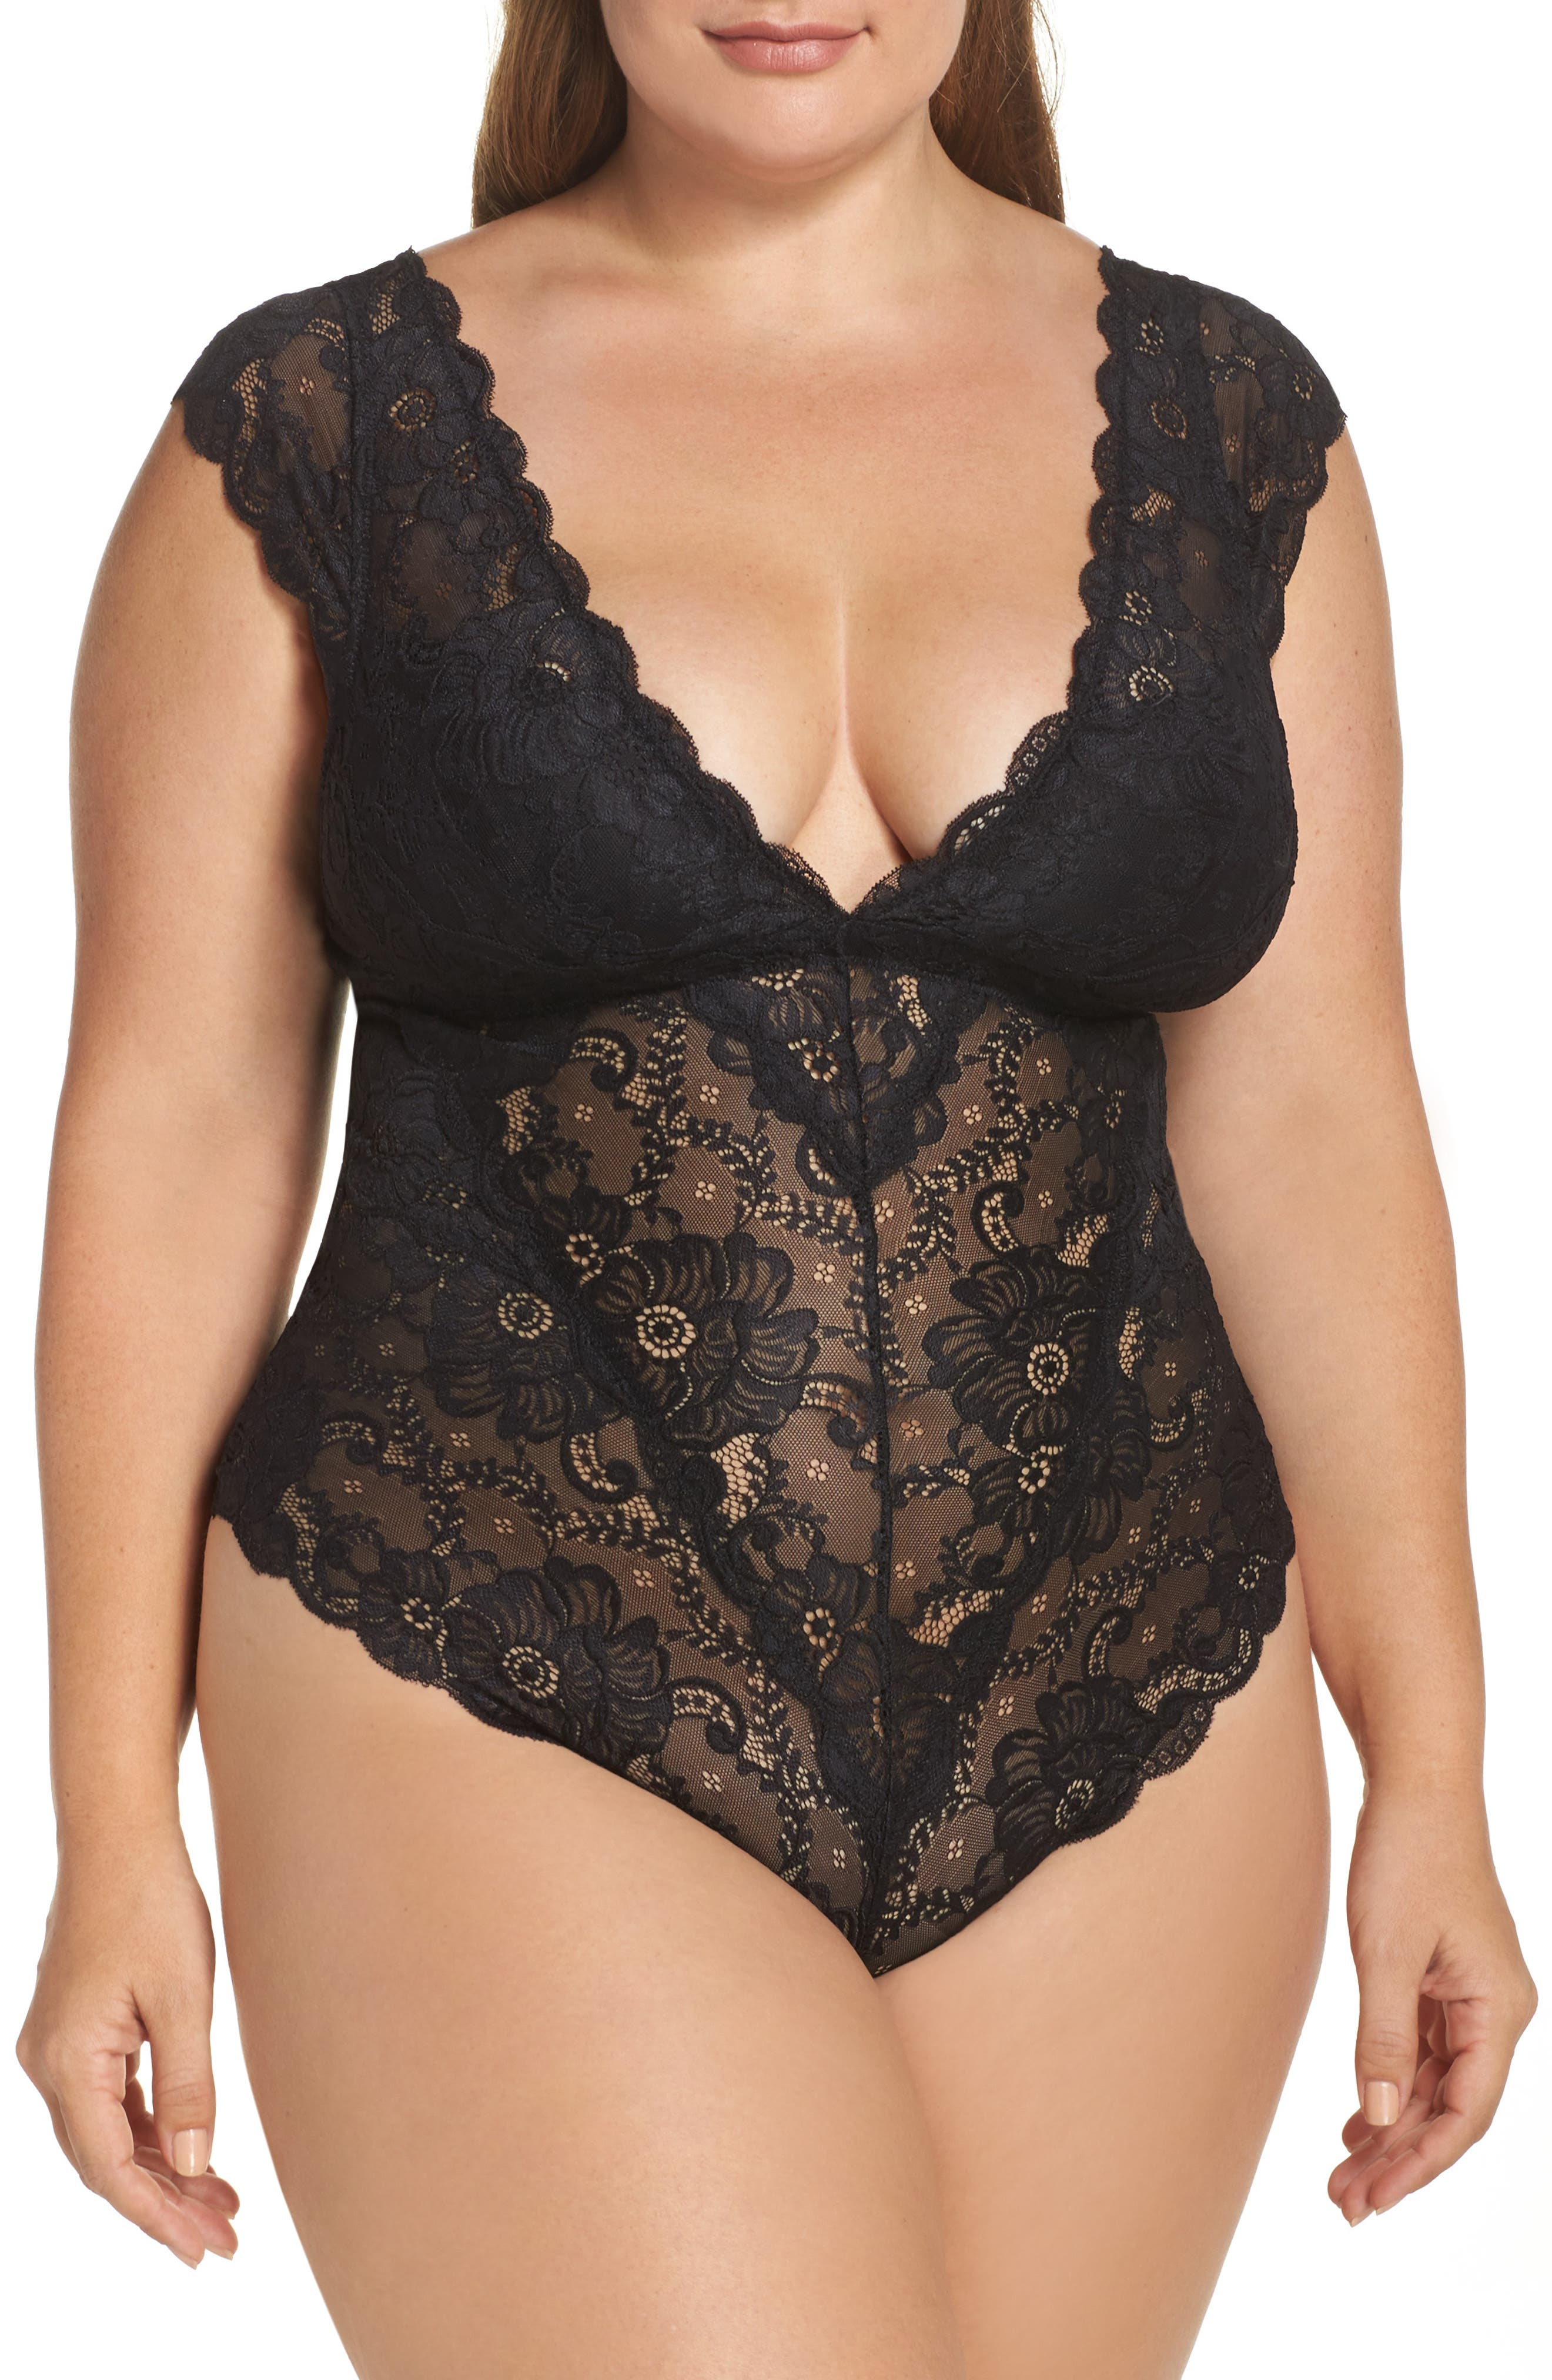 Suzette Lace Teddy,                         Main,                         color, Black